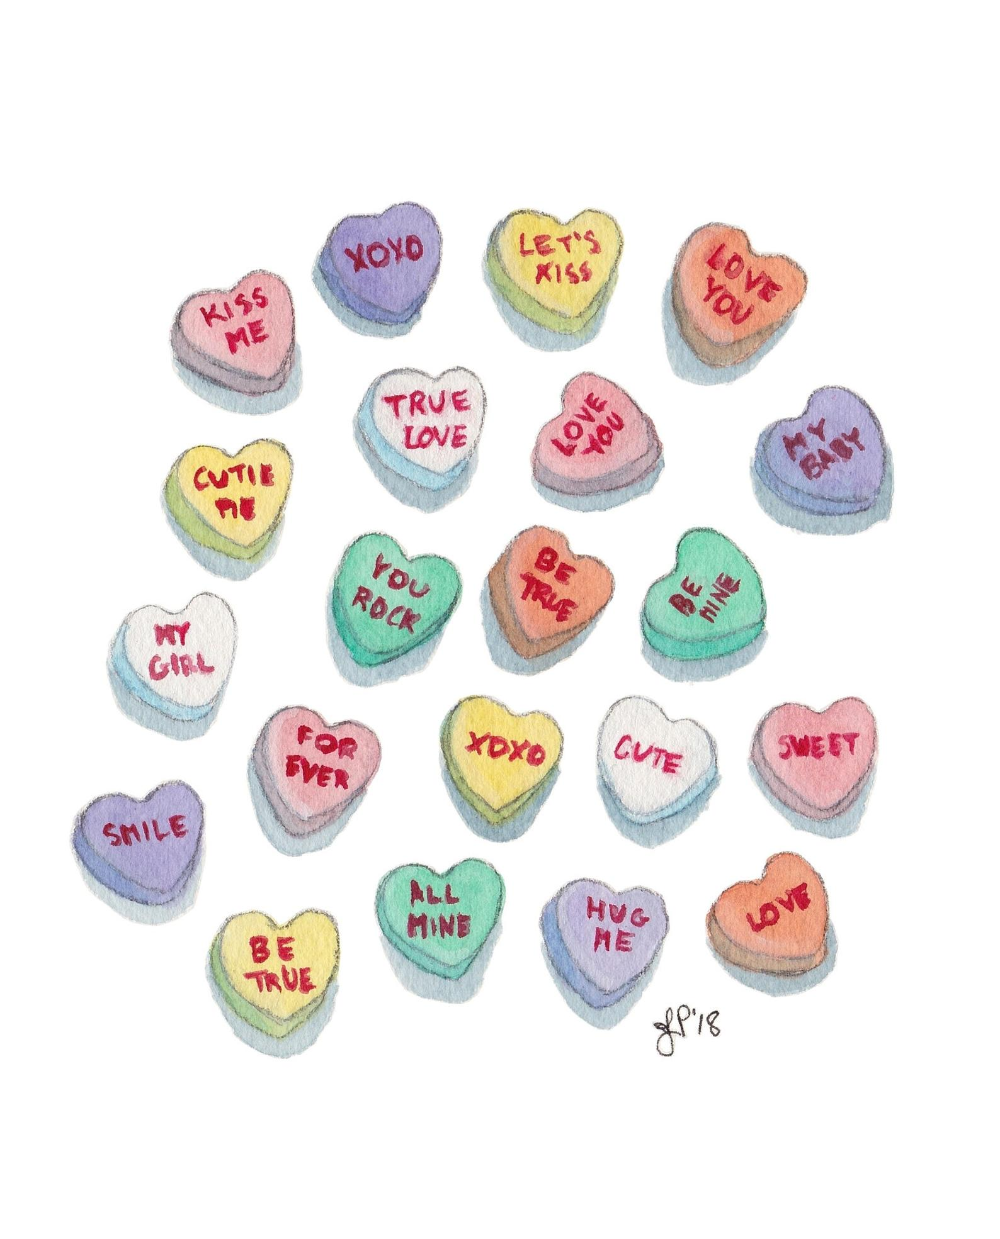 Candy Hearts Watercolor Art Print Colorful Necco Sweethearts Etsy Watercolor Art Prints Valentines Art Heart Candy